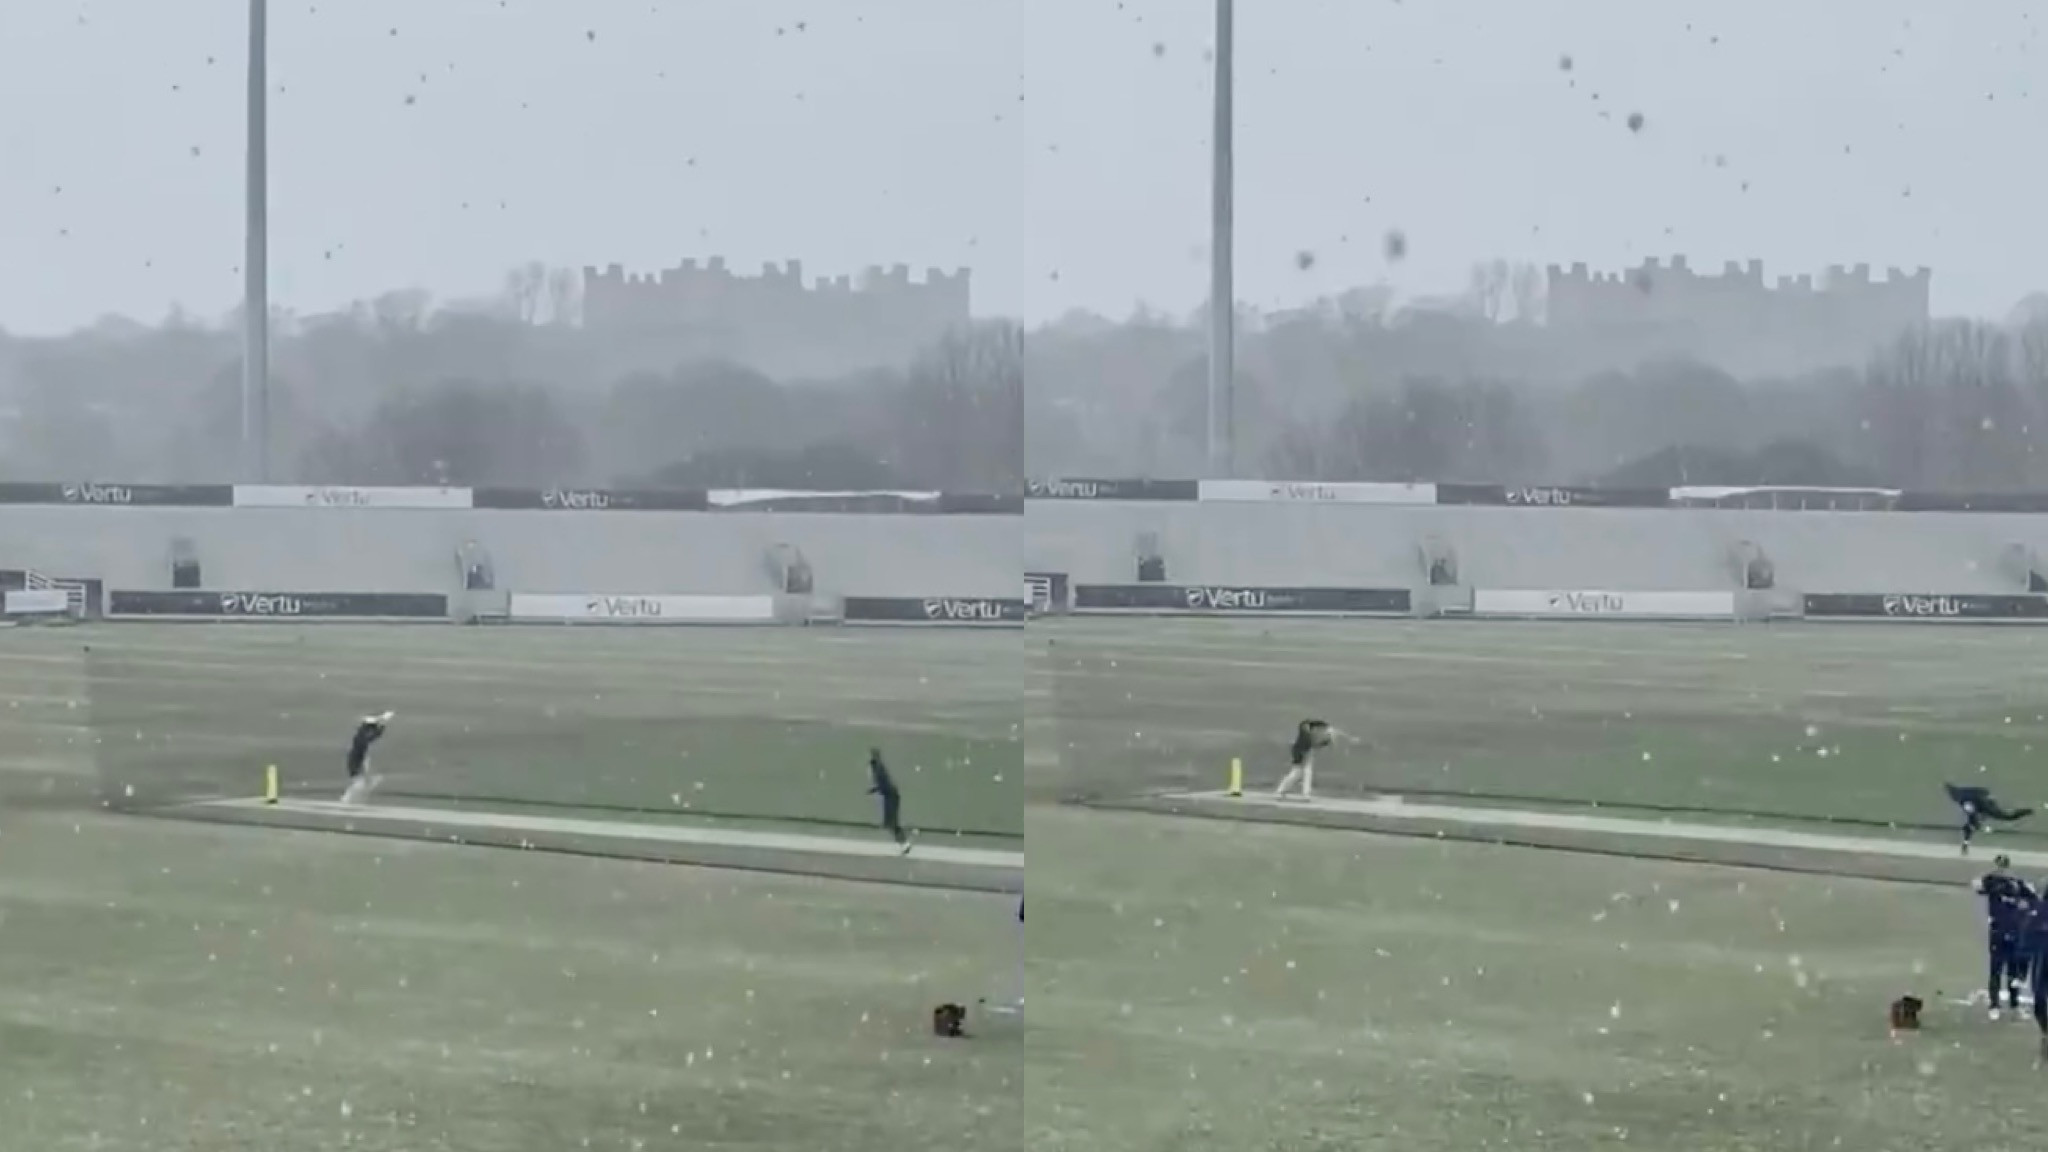 WATCH- Durham cricket club players practice in snowfall ahead of county championship